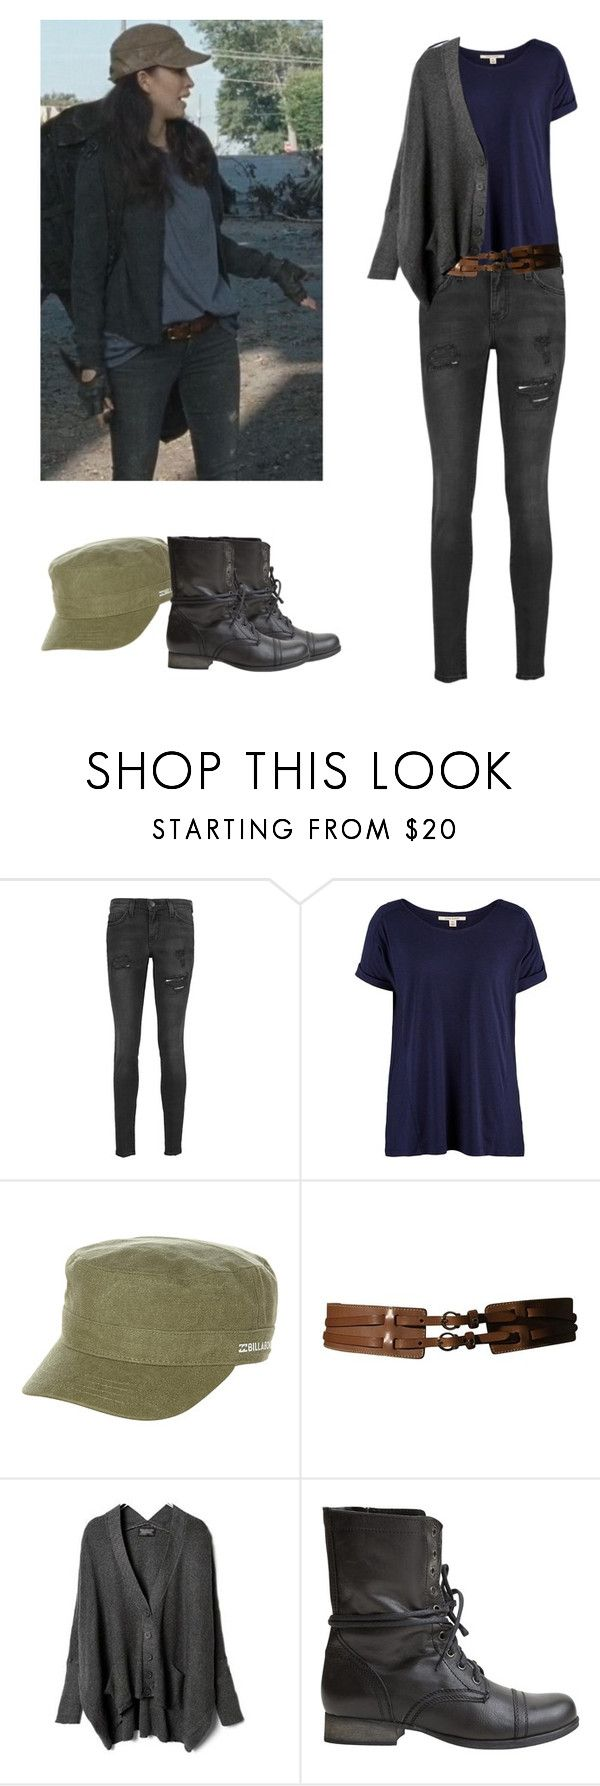 """""""Rosita Espinosa - twd / the walking dead"""" by shadyannon ❤ liked on Polyvore featuring Current/Elliott, Billabong, Etienne Aigner and Steve Madden"""